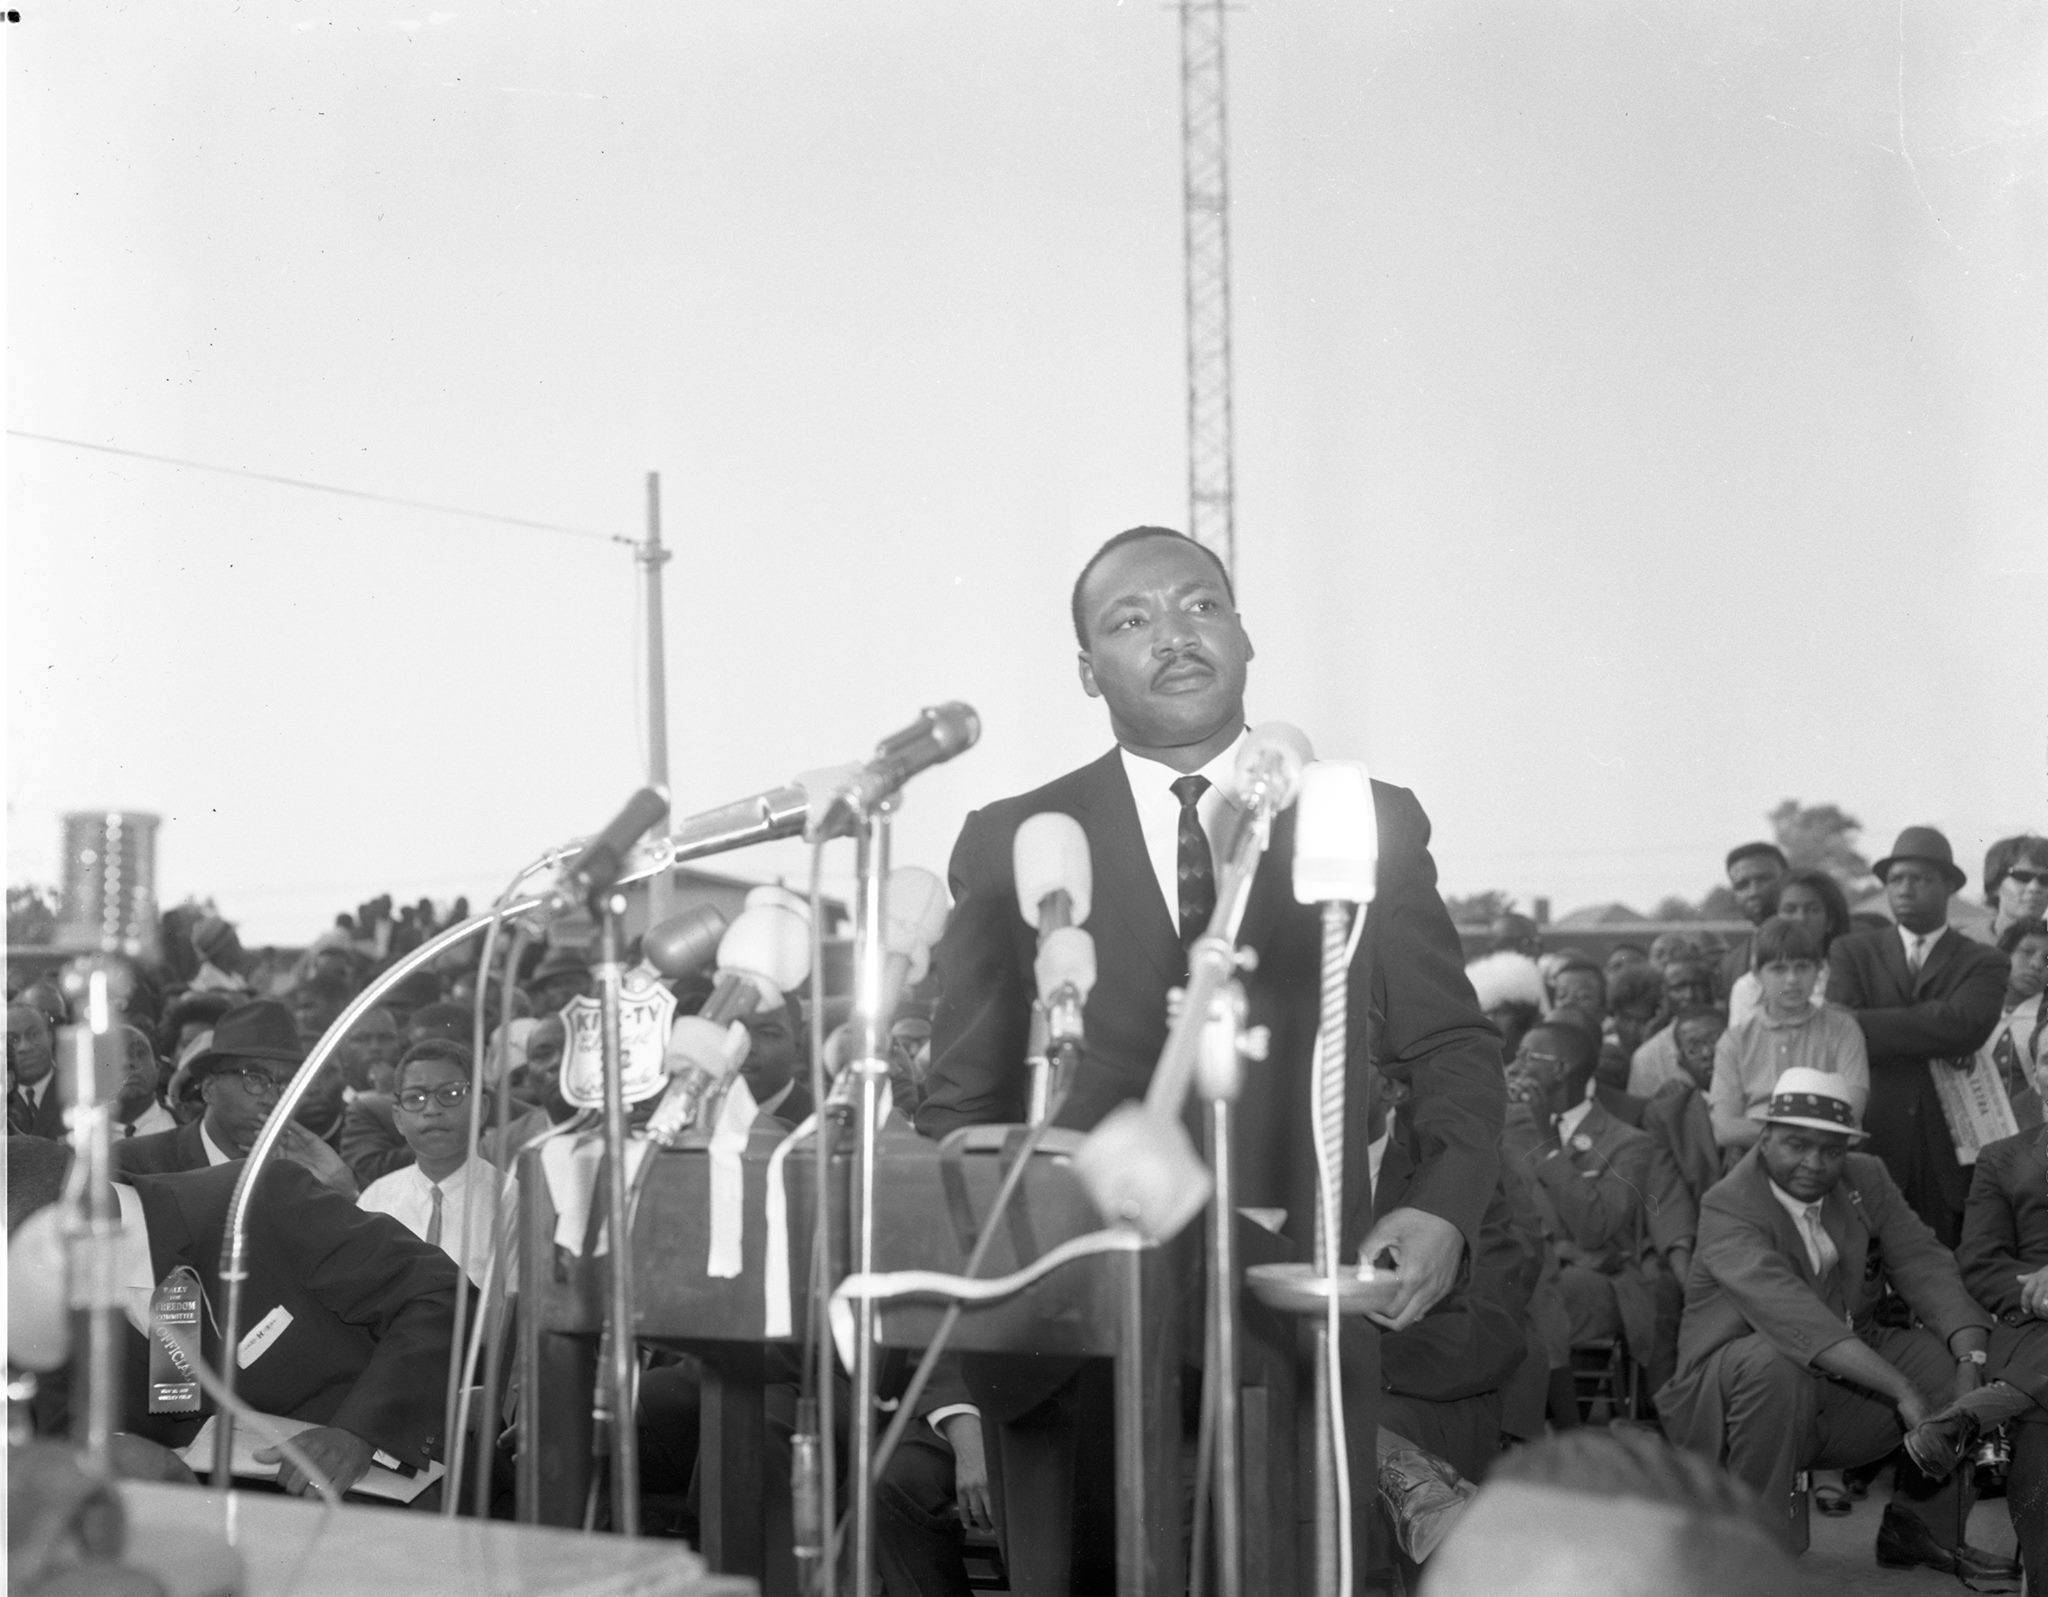 Dr. King at Freedom Rally, Wrigley Field, Los Angeles, May 26, 1963